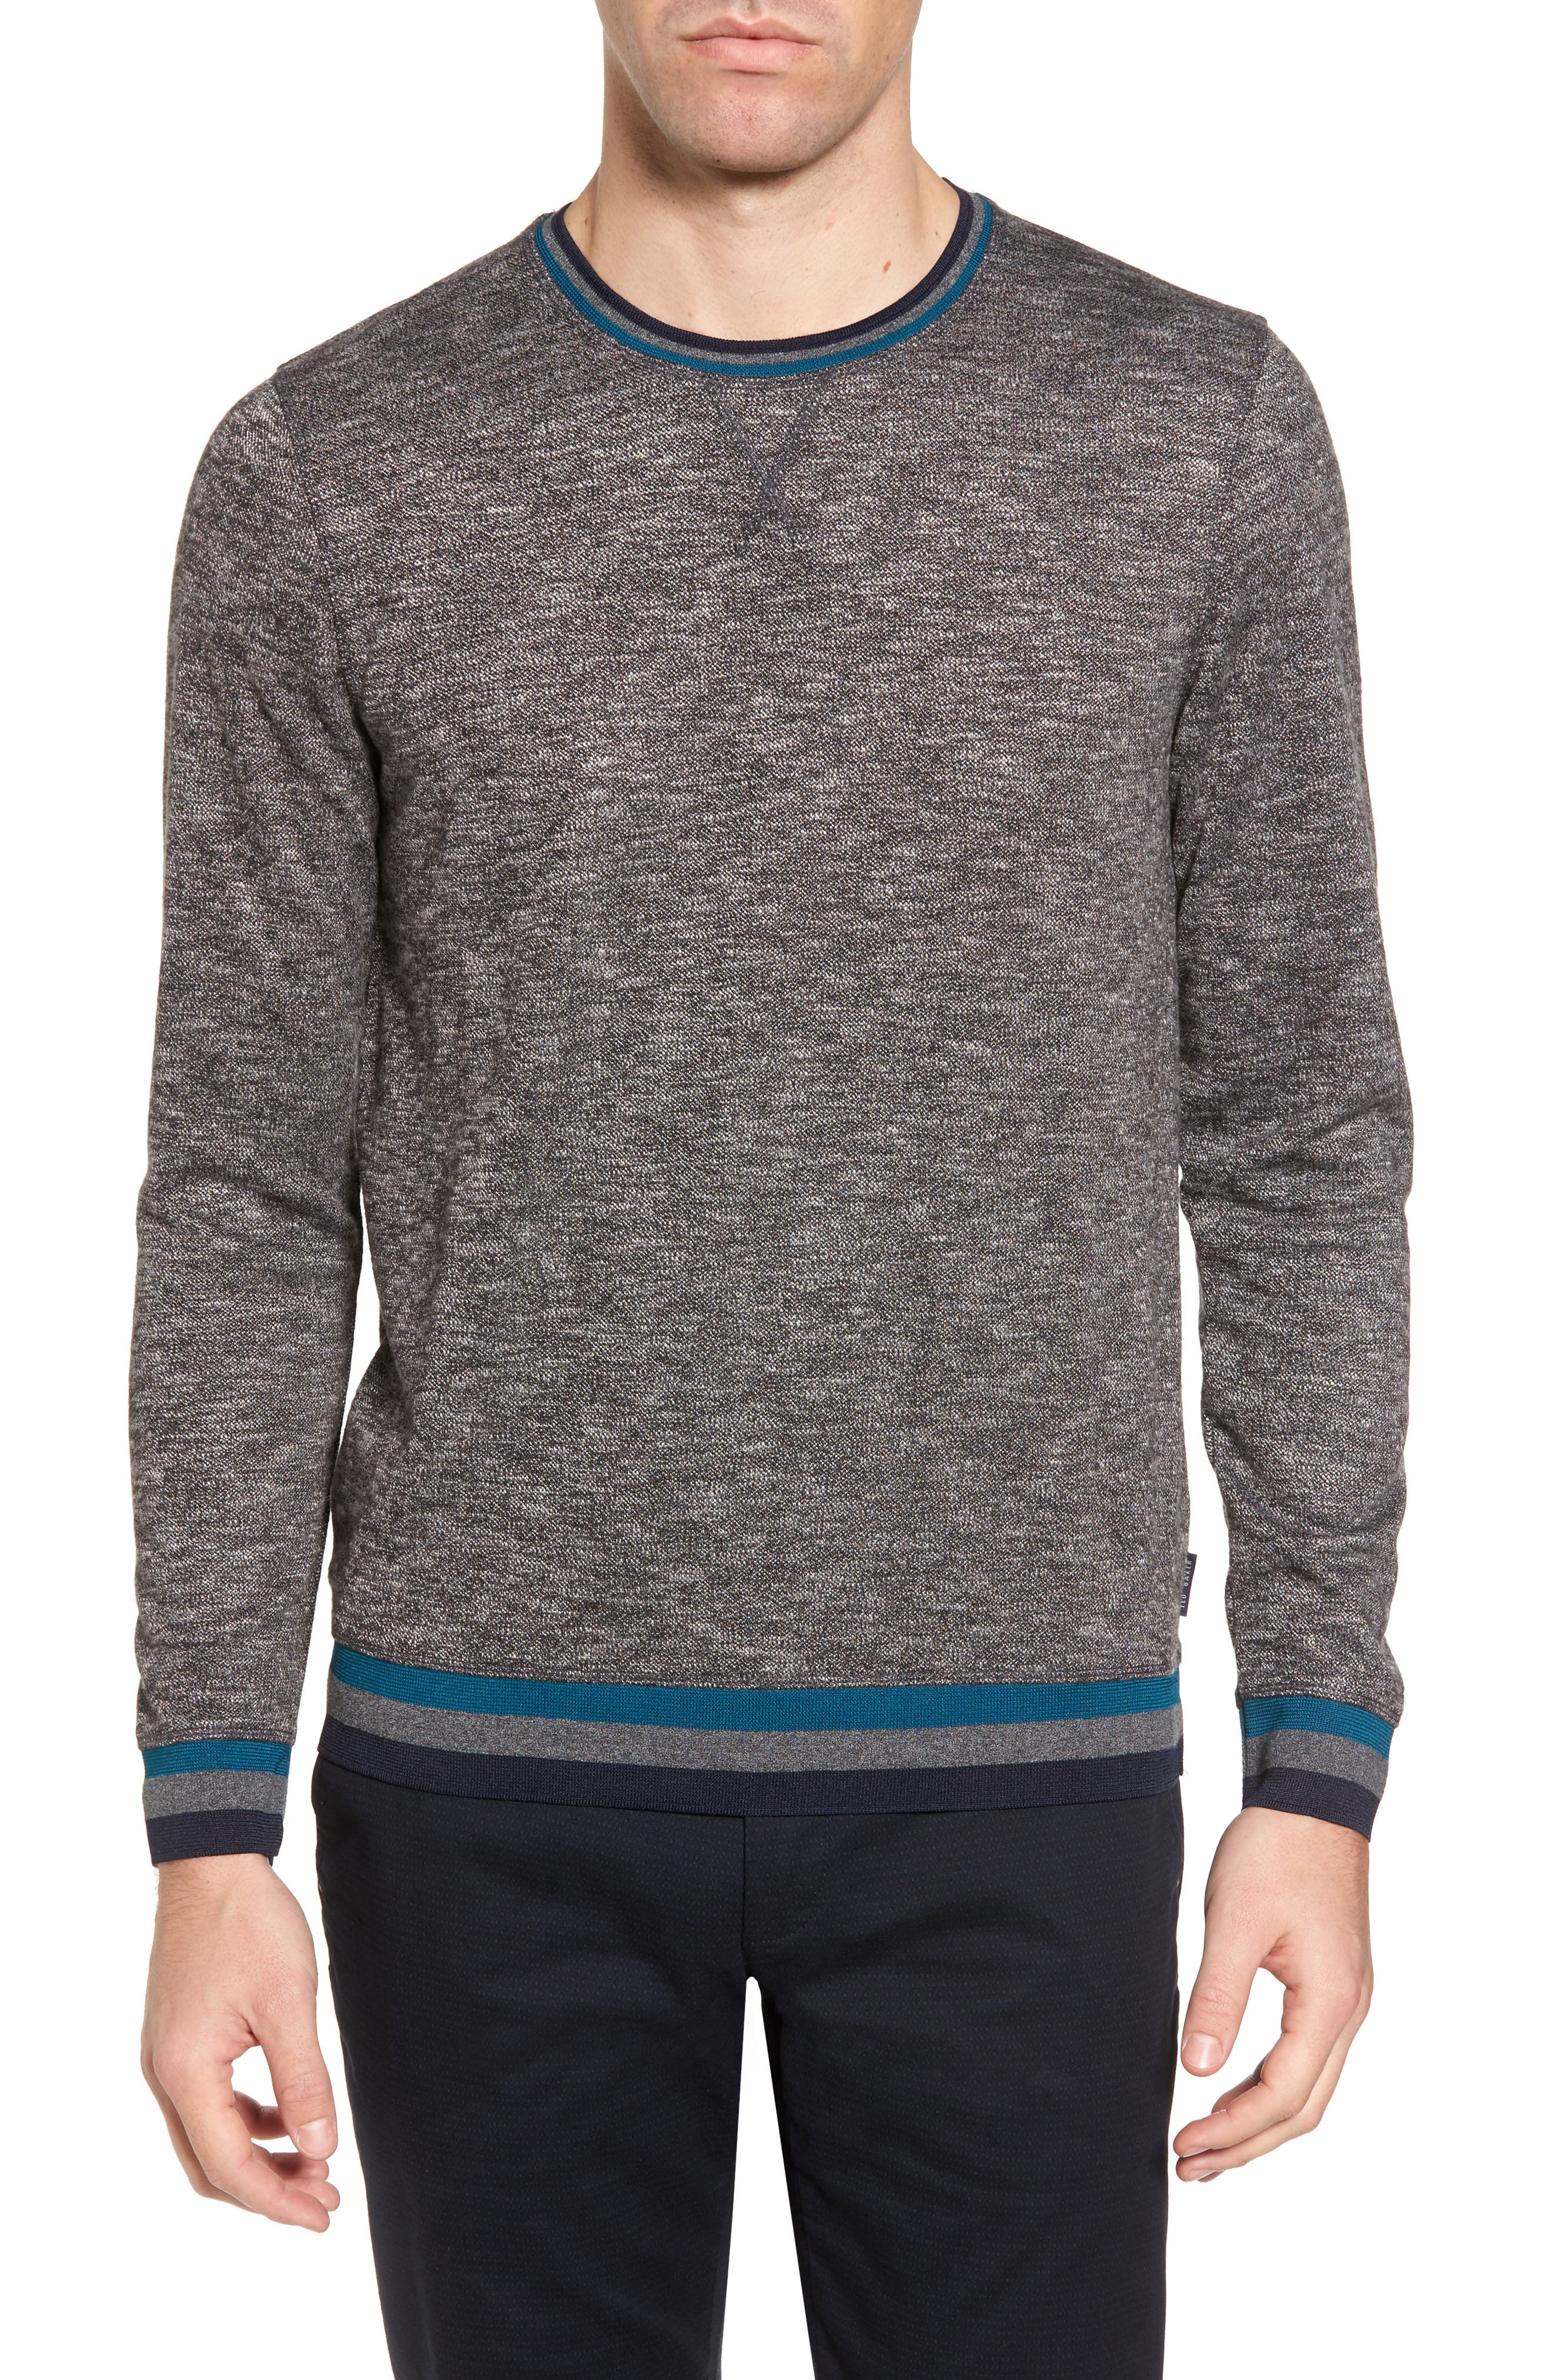 Slater Trim Fit Slub Sweatshirt,                         Main,                         color, Black